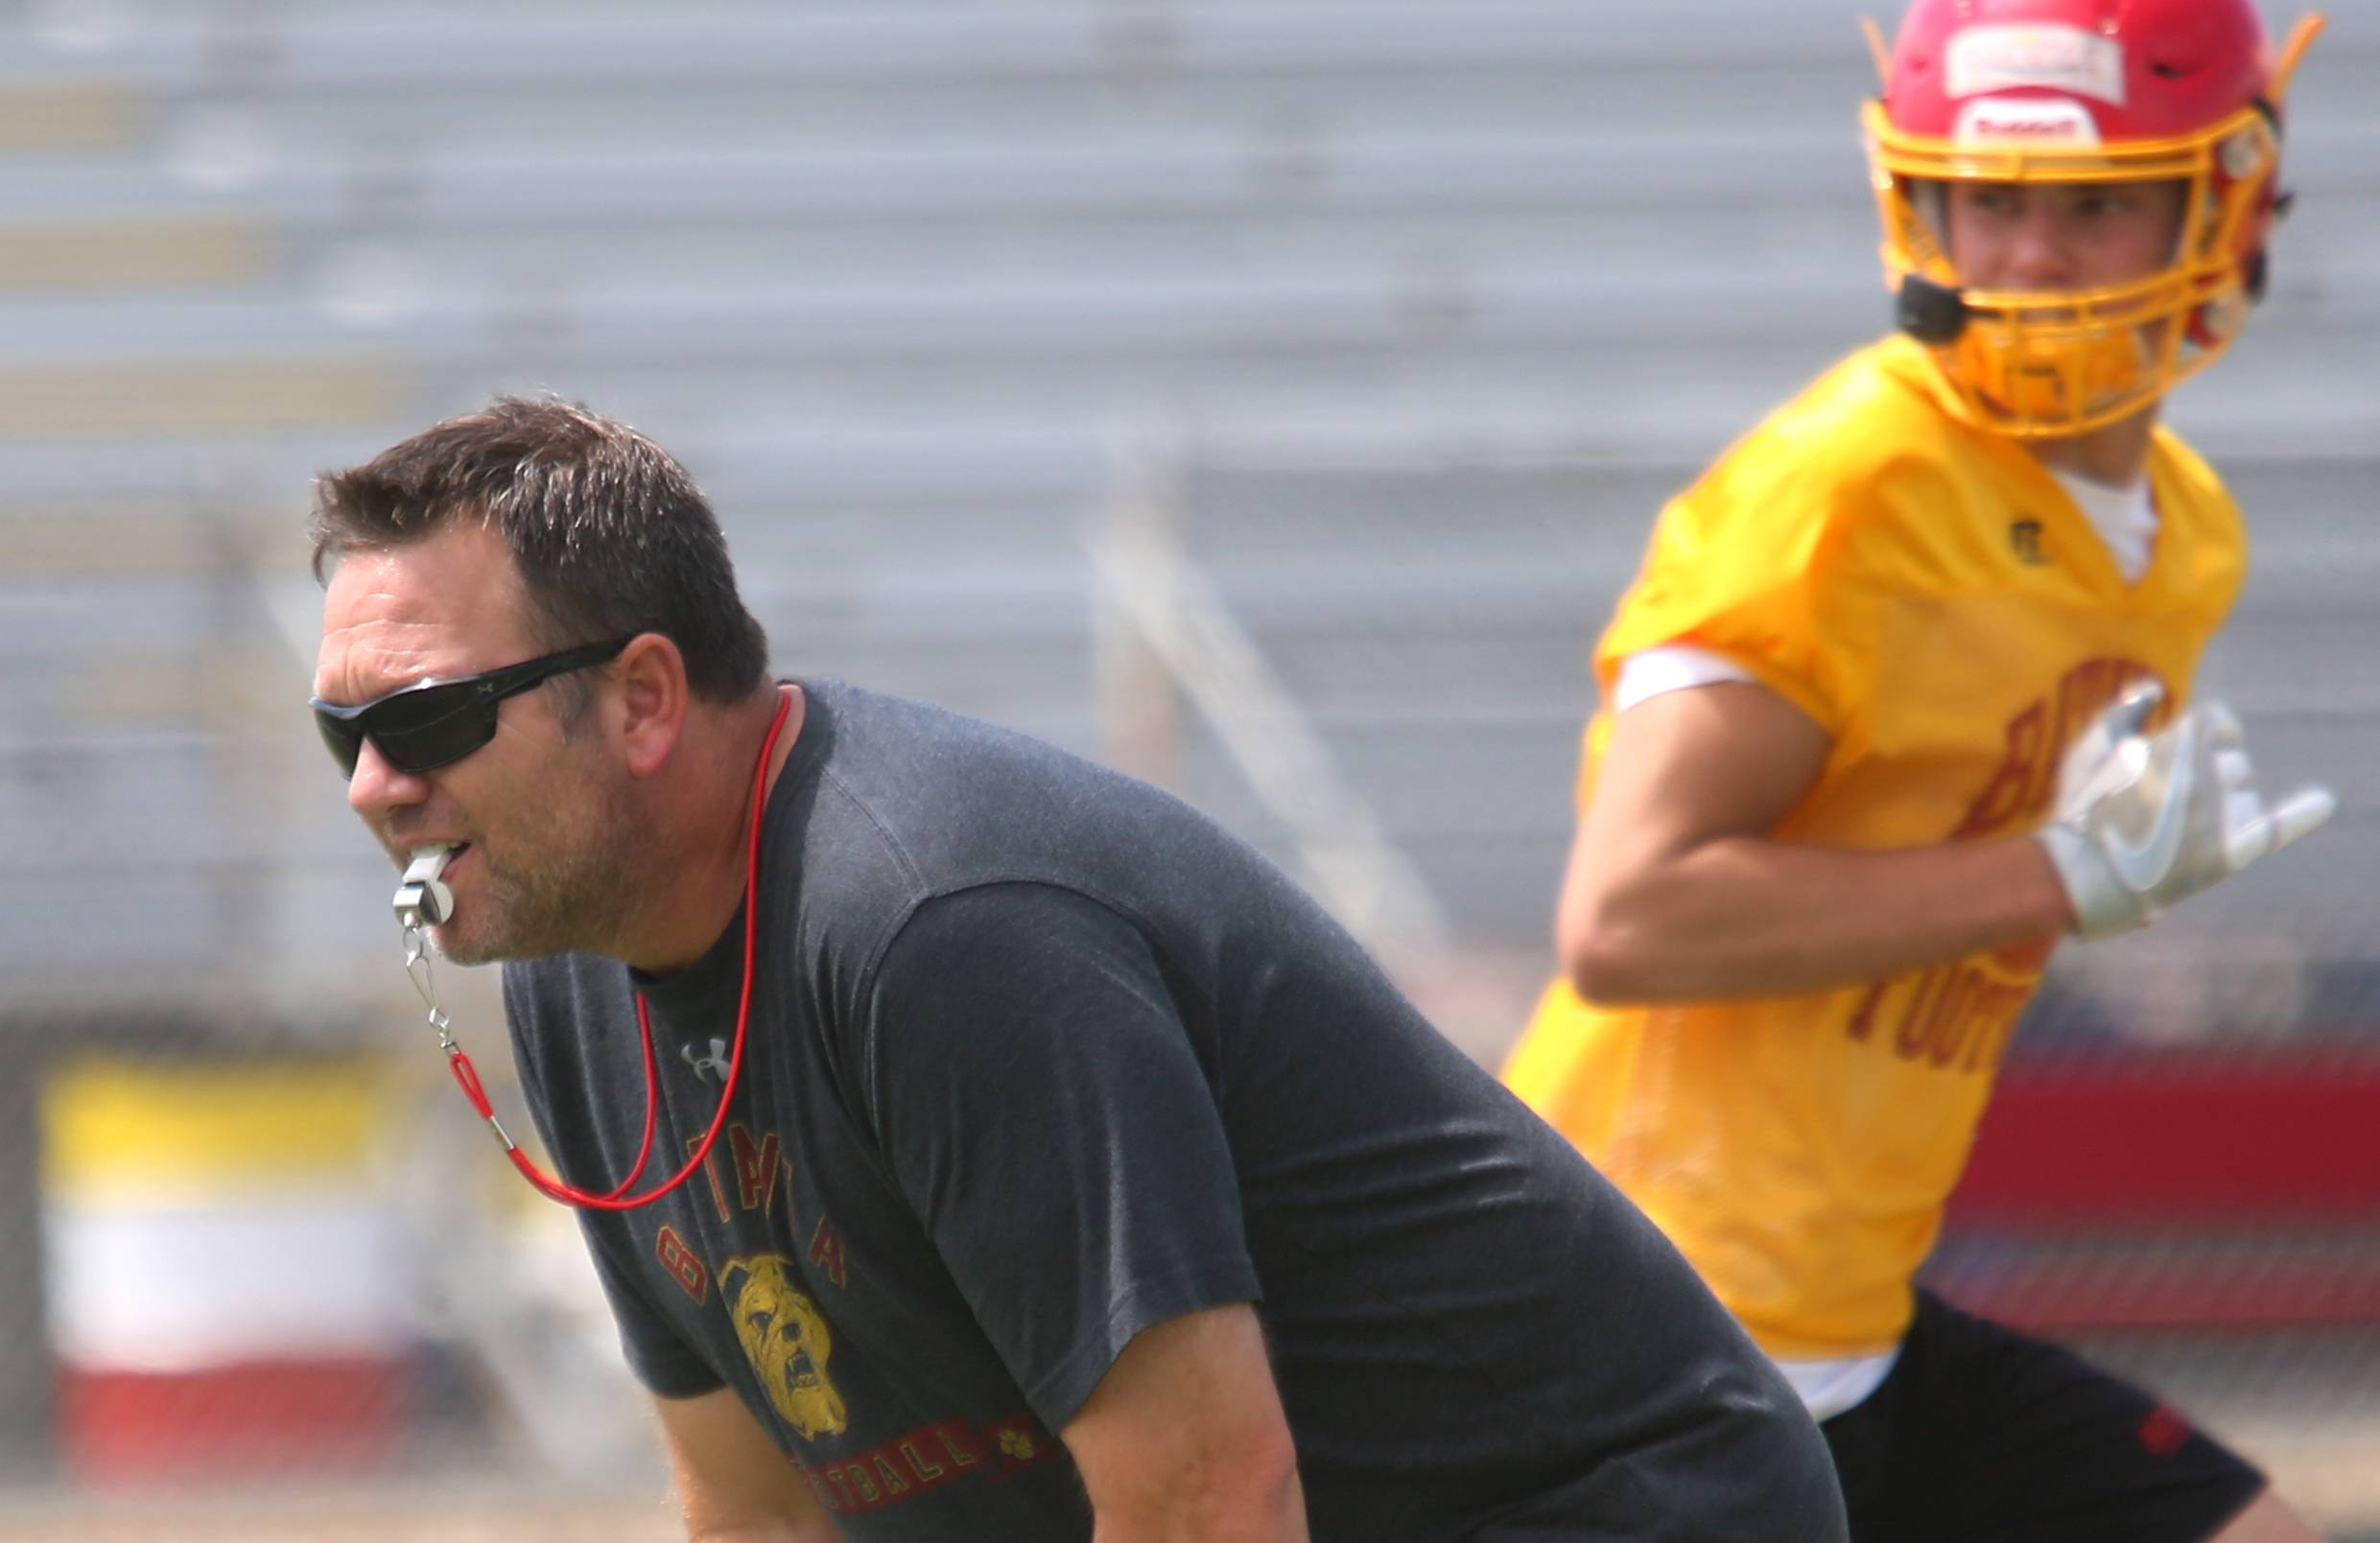 Head coach Dennis Piron keeps his eyes on the action during the first day of the varsity practice season for Batavia High School football at Bulldog Stadium in Batavia Monday.